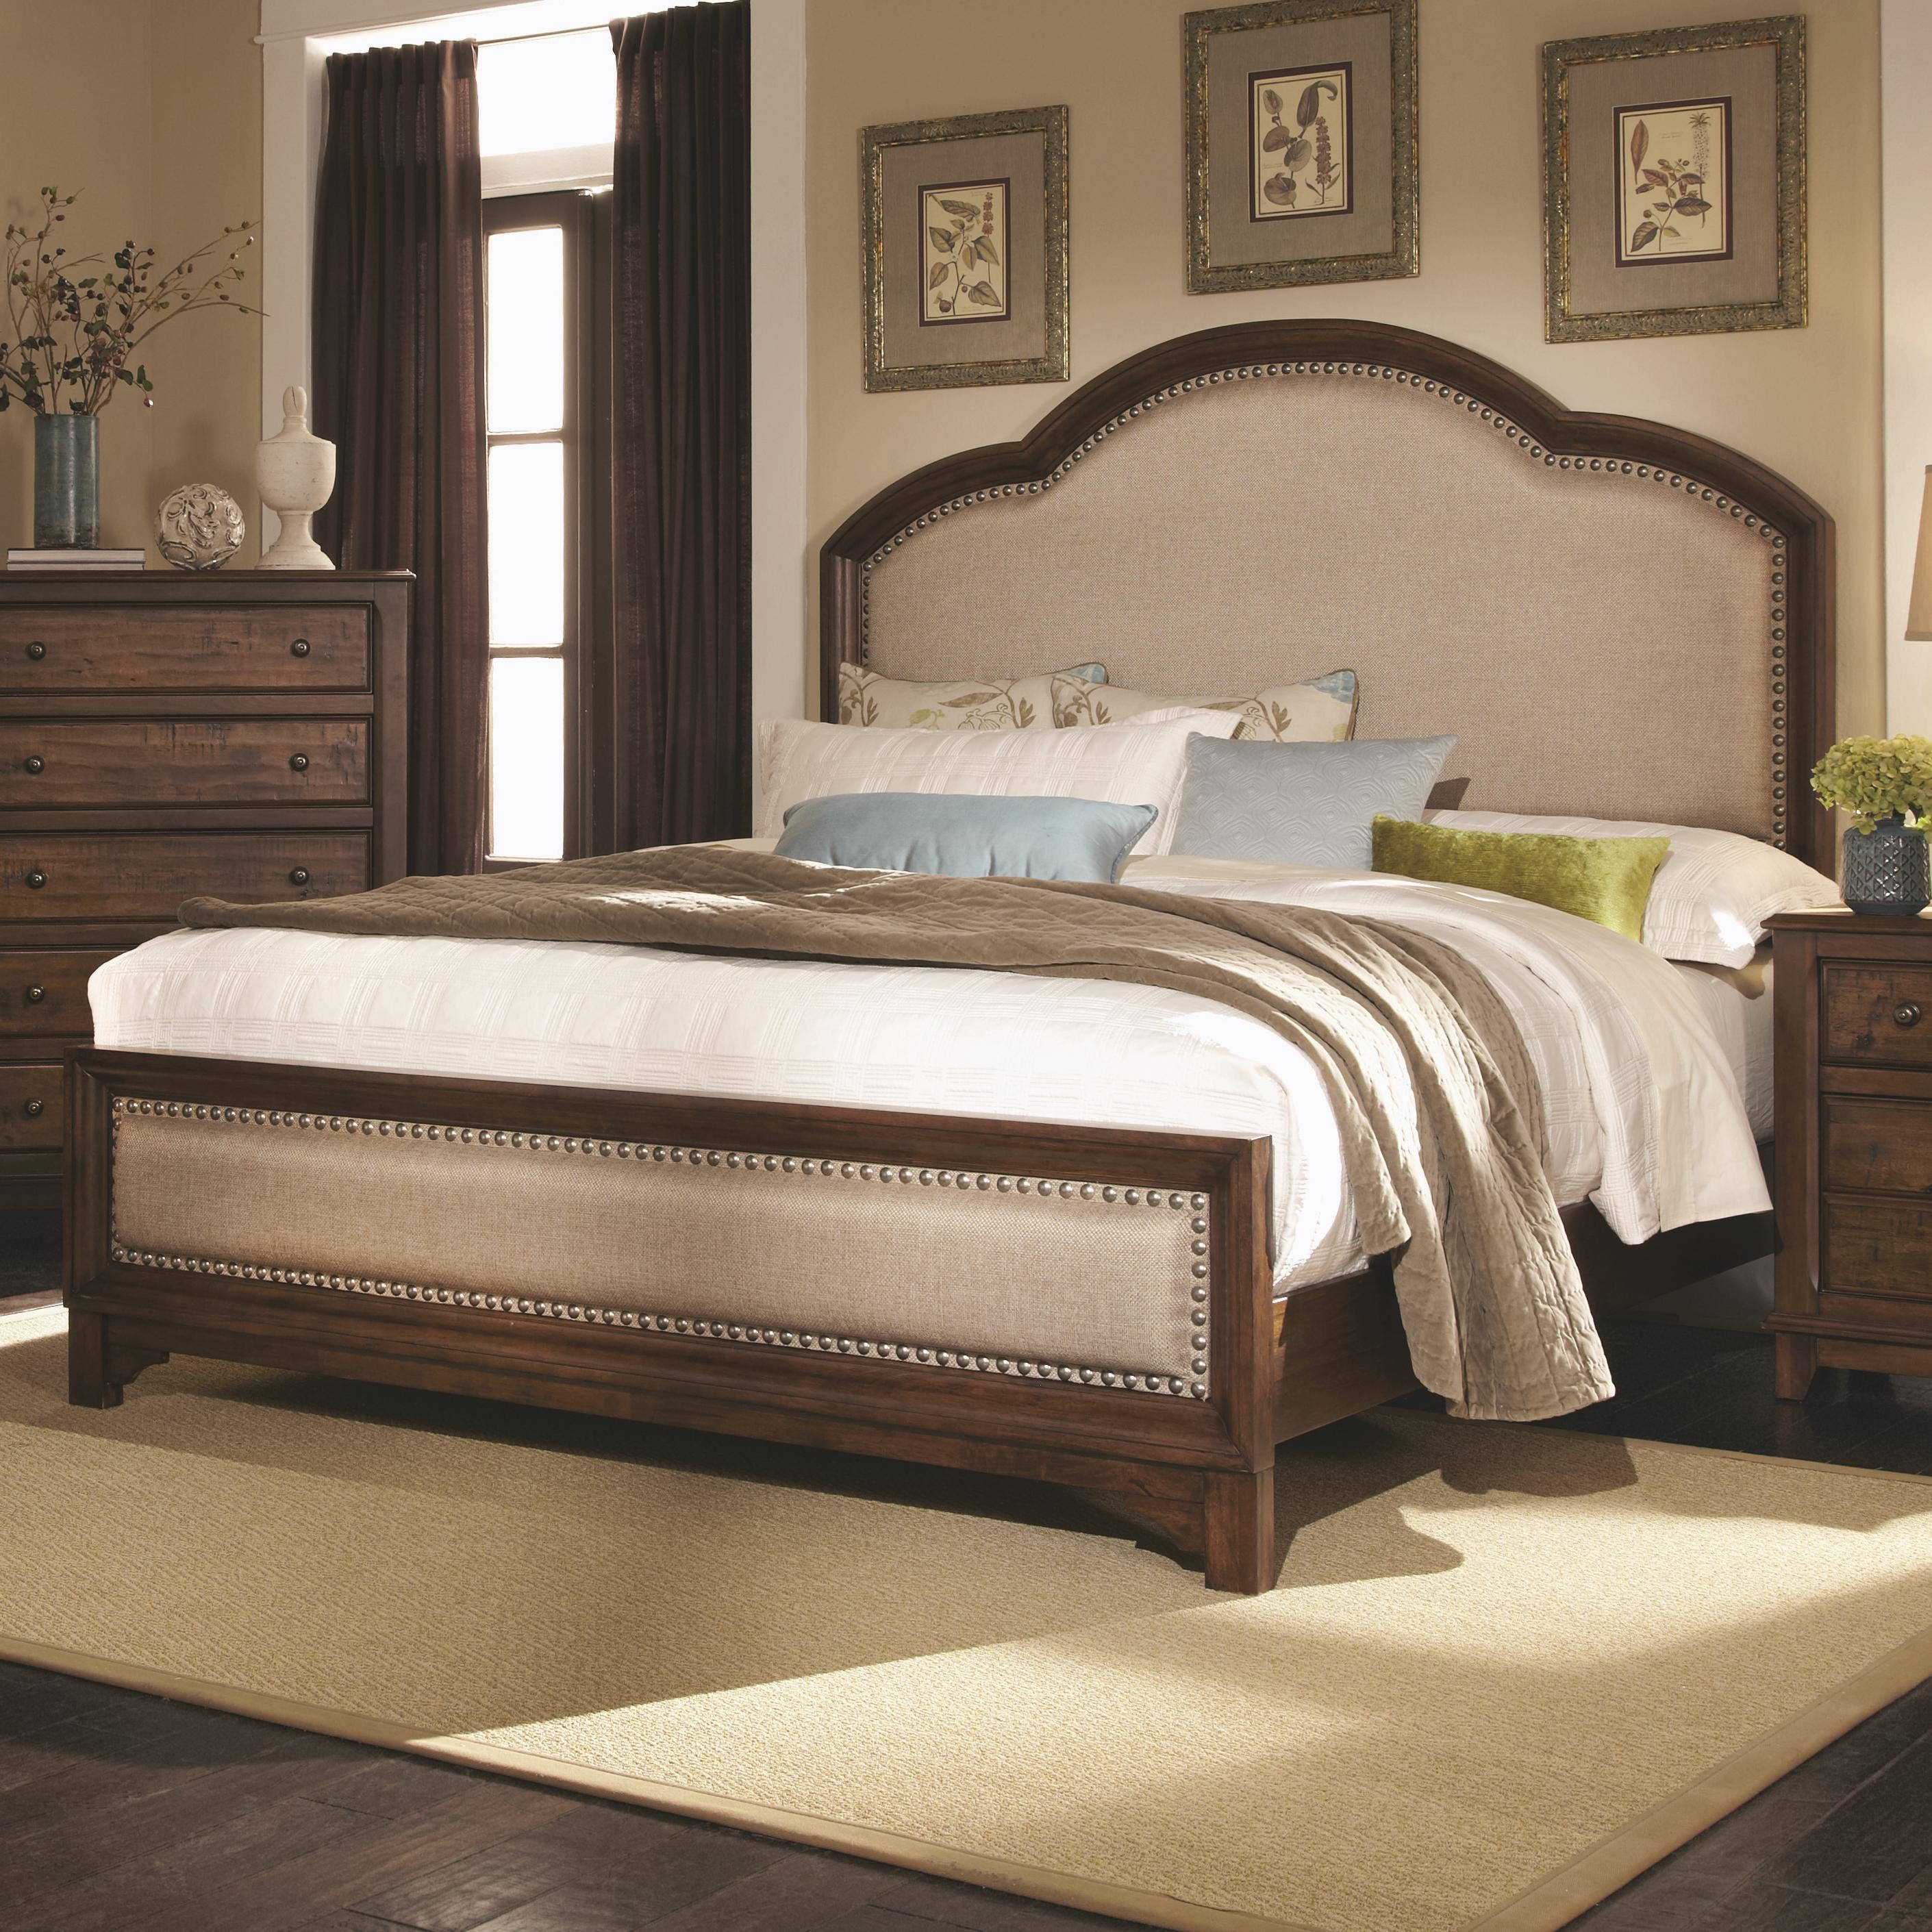 Coaster Laughton California King Upholstered Bed - Item Number: 203261KW